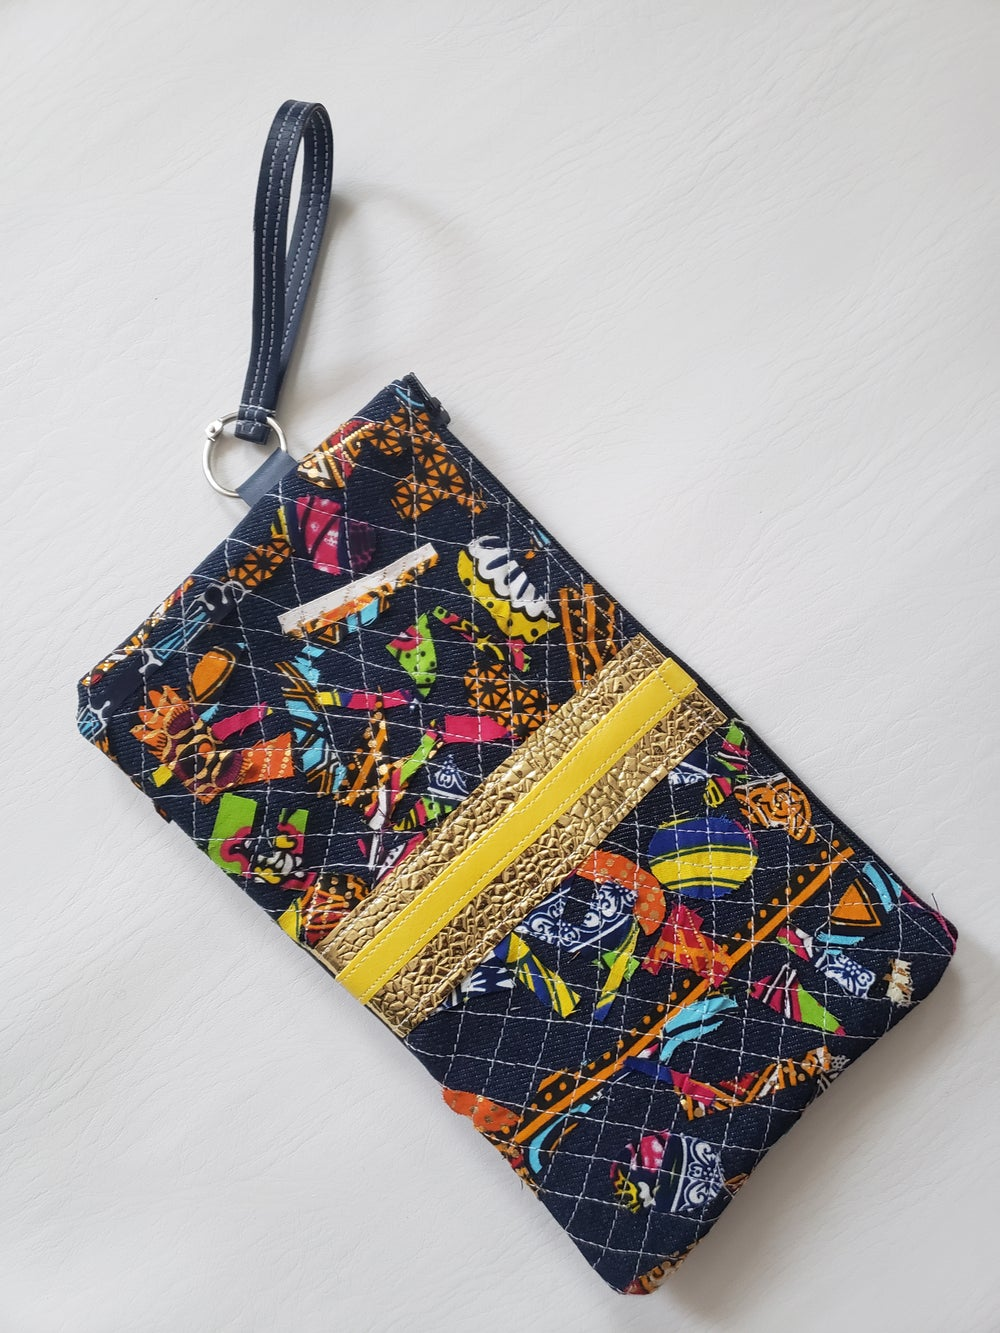 Image of Upcycled clutch with scrap fabric